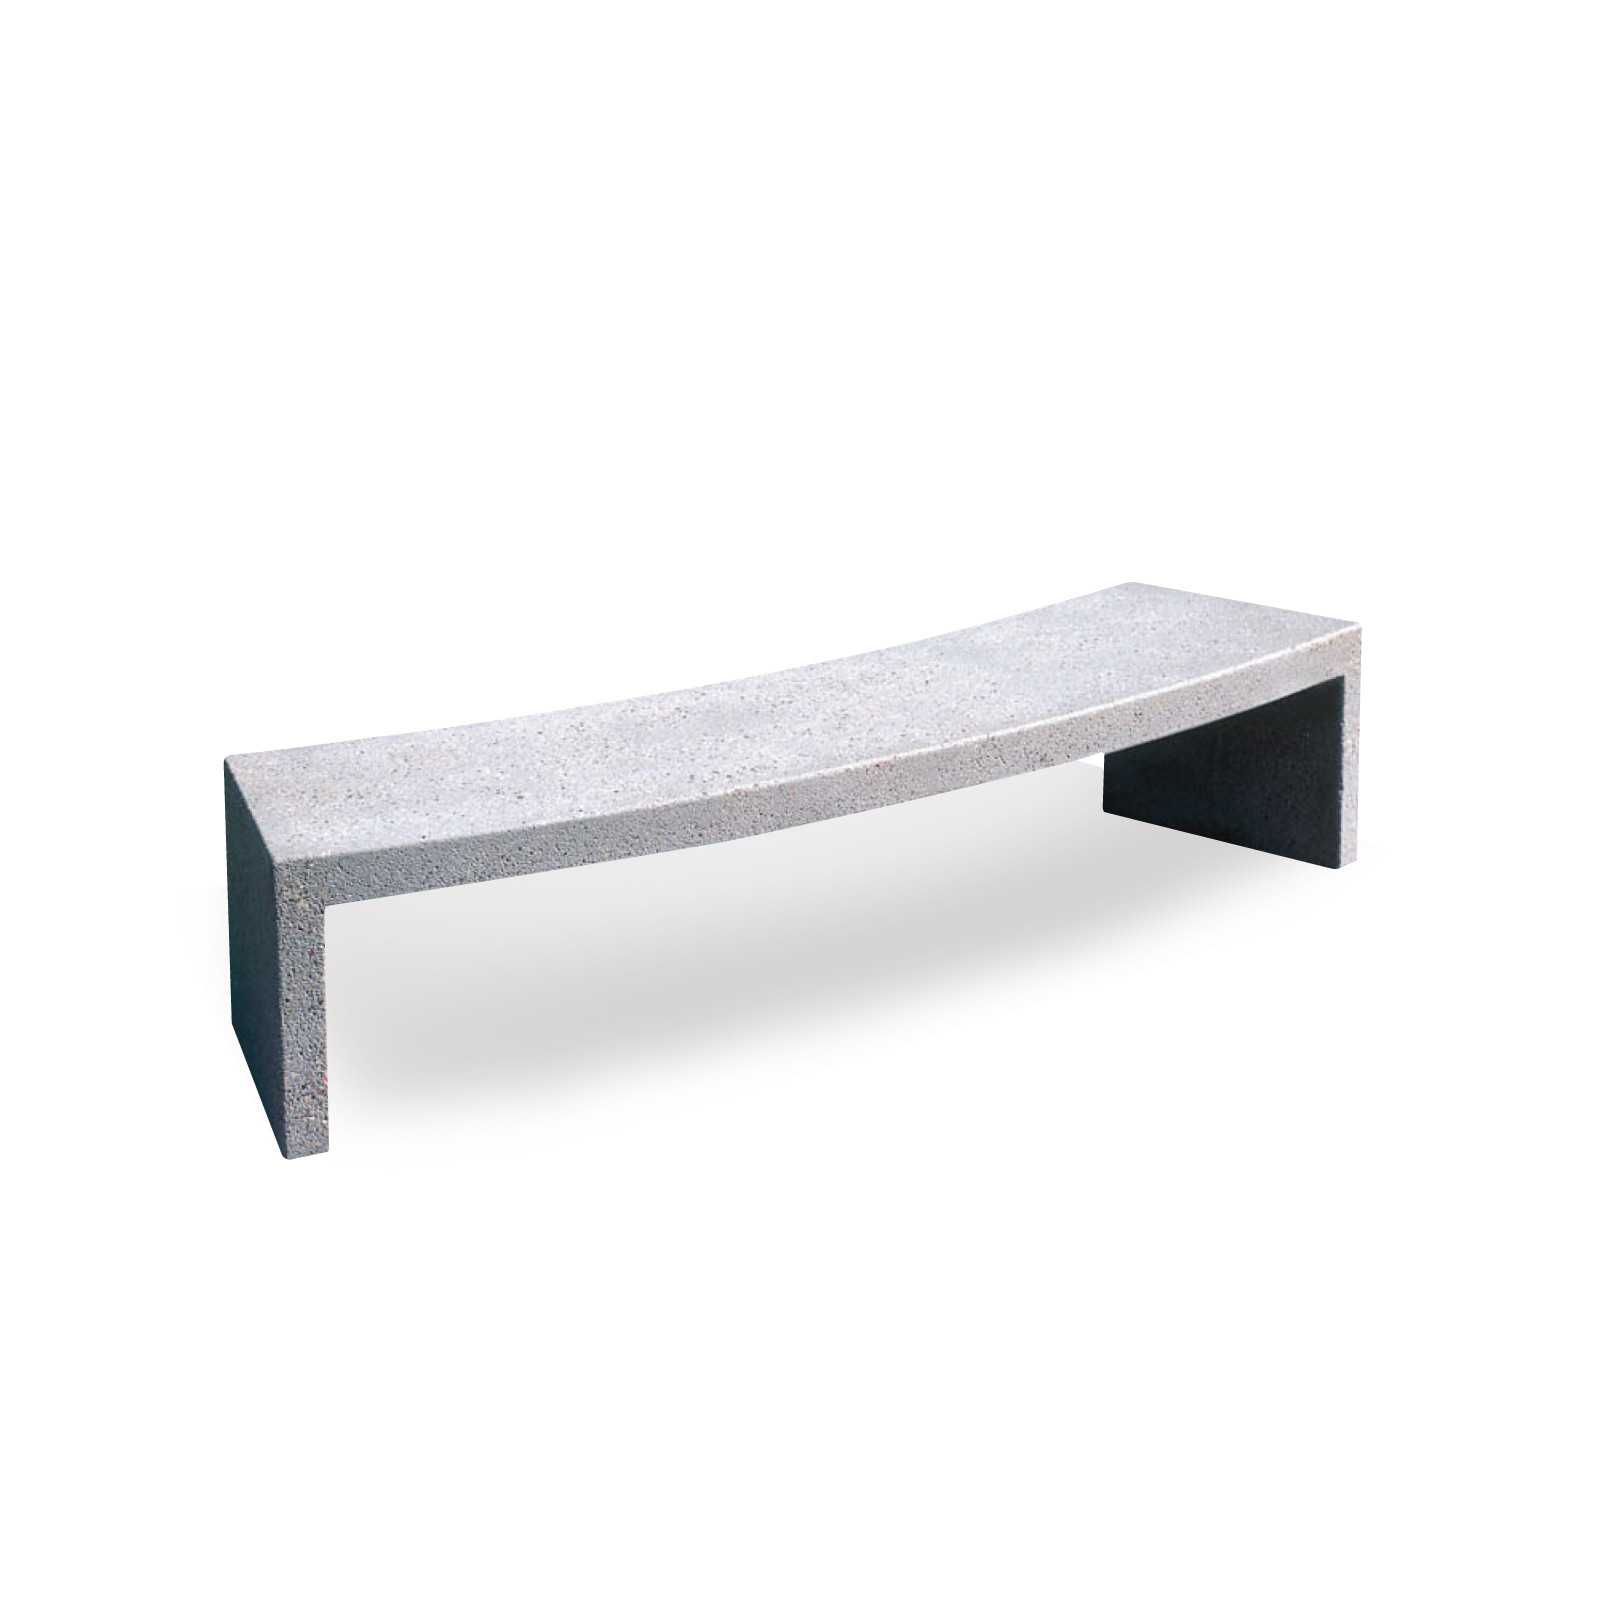 Concrete Radius Bench - 6-ft3